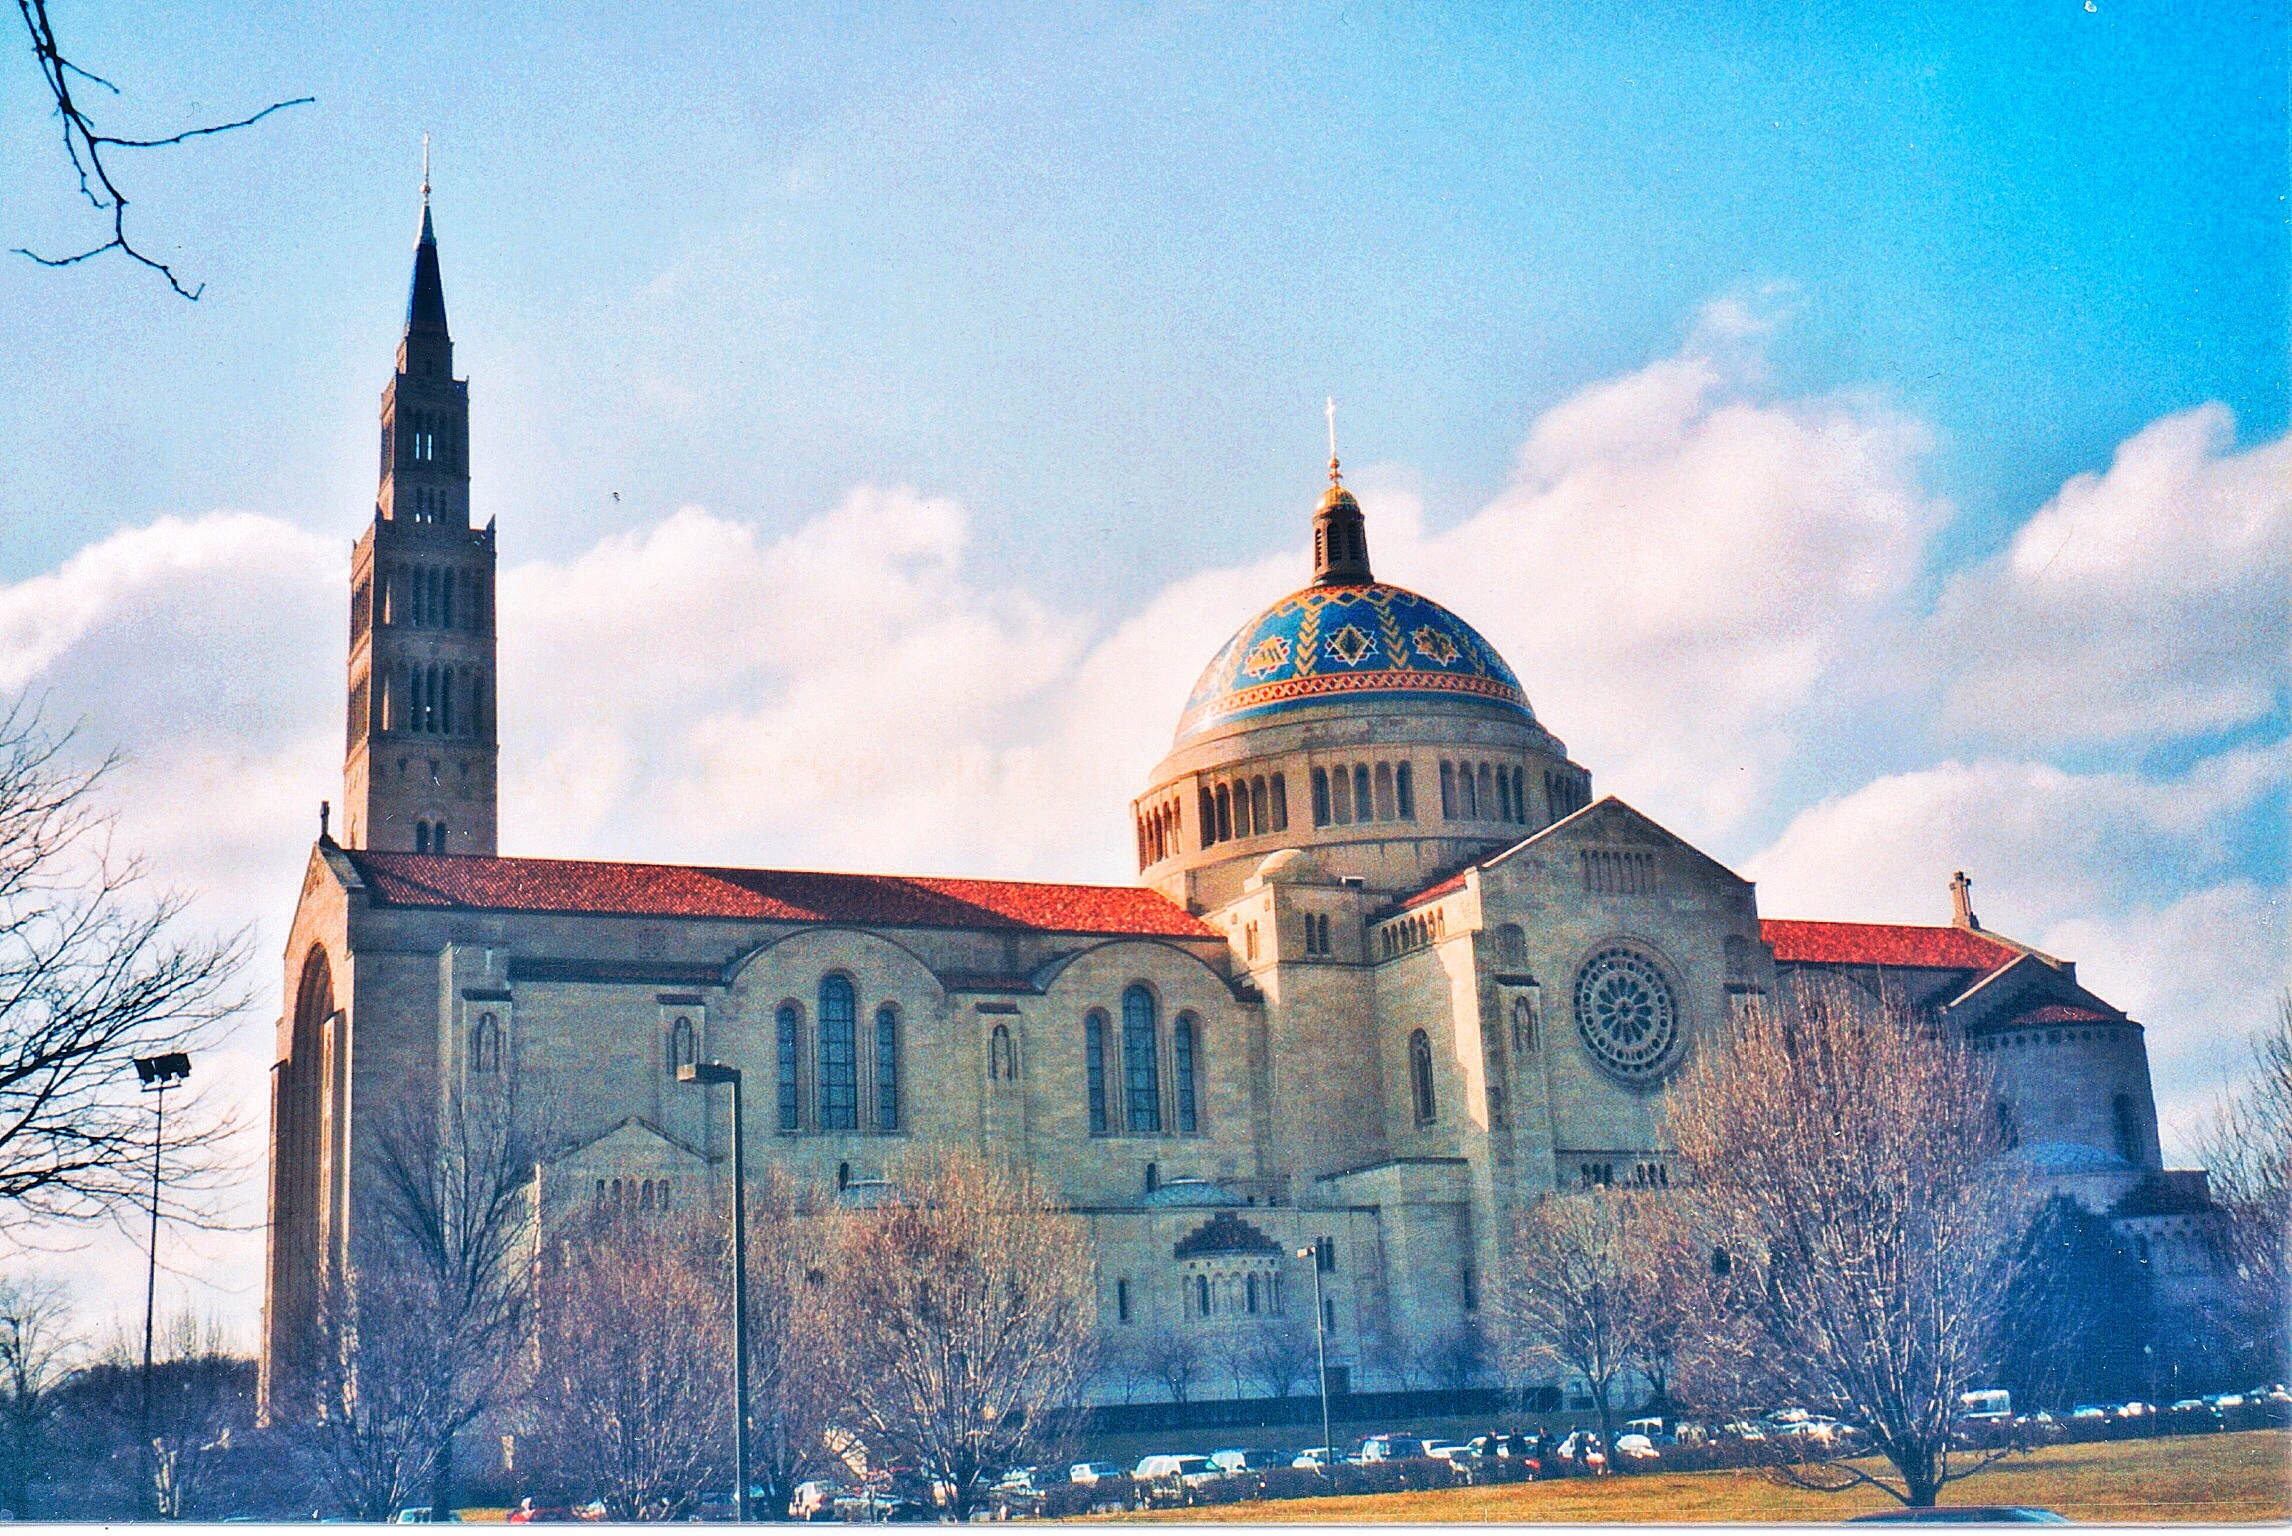 an analysis of catholic church worship The eastern catholic church is sacramental in its worship, which resembles the other eastern orthodox churches (antiochian, greek, russian, serbian, ukrainian, etc) the centre of its liturgical life is the quiddisha qurbana or the holy and divine liturgy.